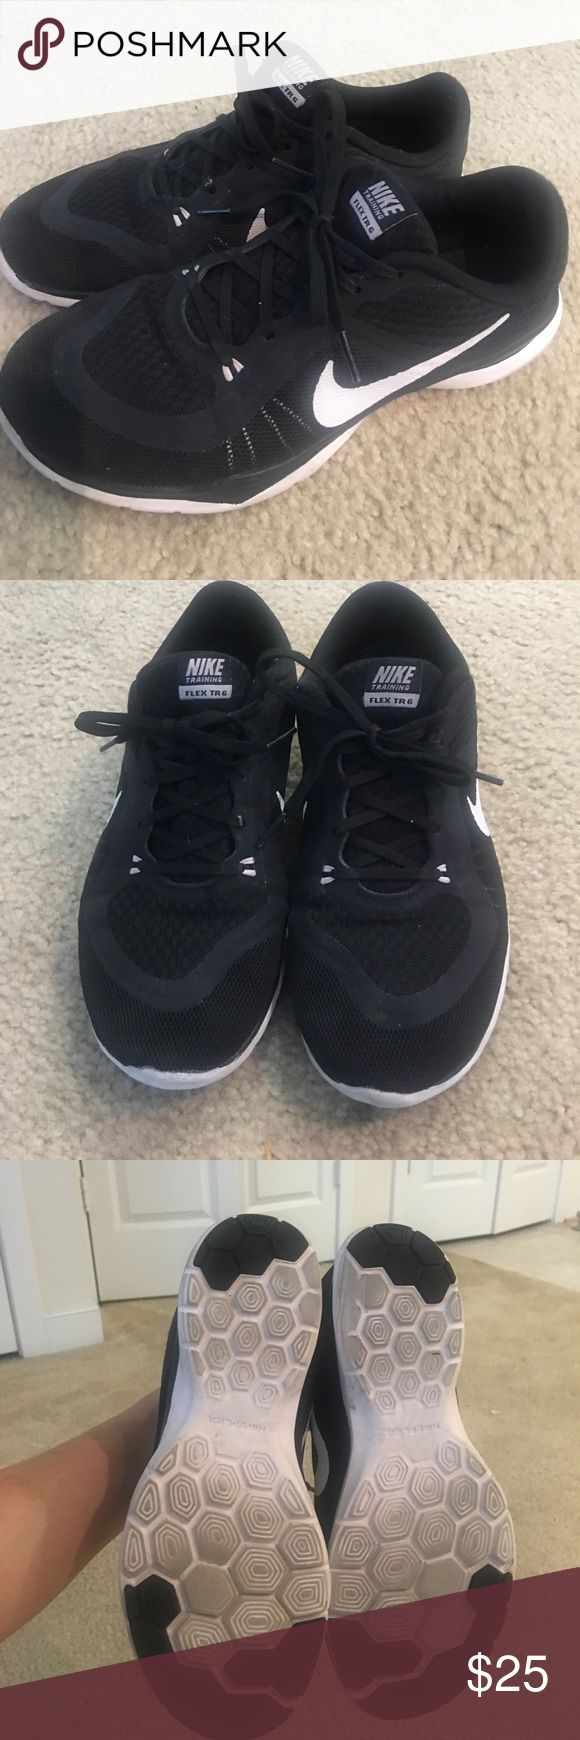 Nike Training Flex TR6 Sneakers Preloved but in excellent condition! Used mostly for cross training indoor workouts. Open to reasonable offers! Nike Shoes Sneakers